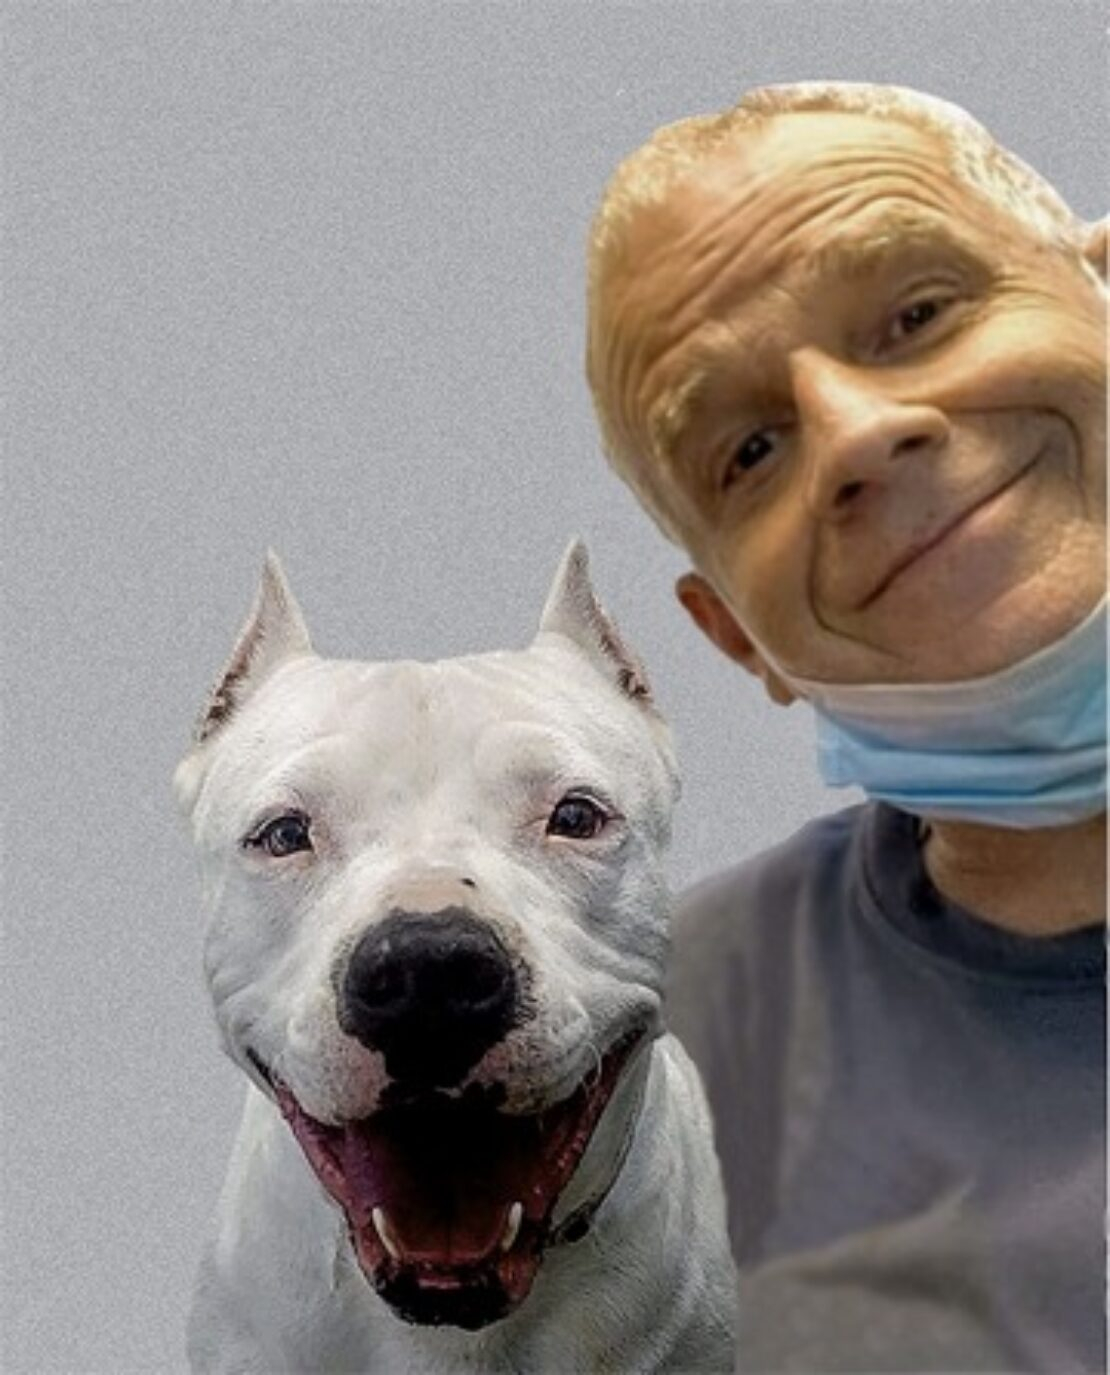 smiling man with gray hair and gray shirt and mask around neck poses next to a white dog.